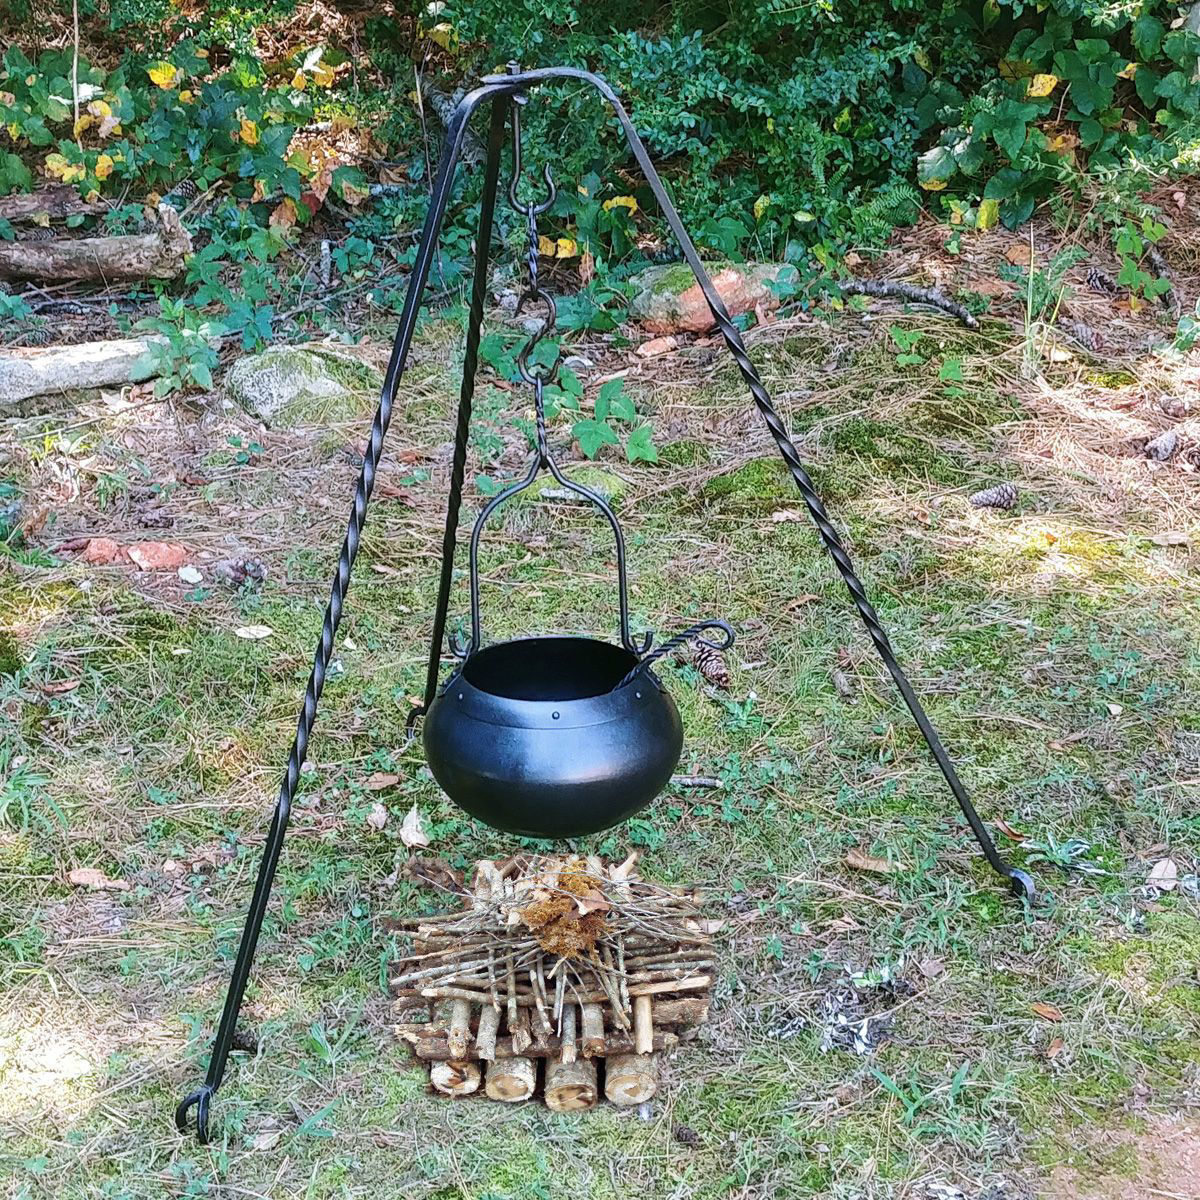 Medieval Hand-Forged Authentic Iron Ketle Cooking Set